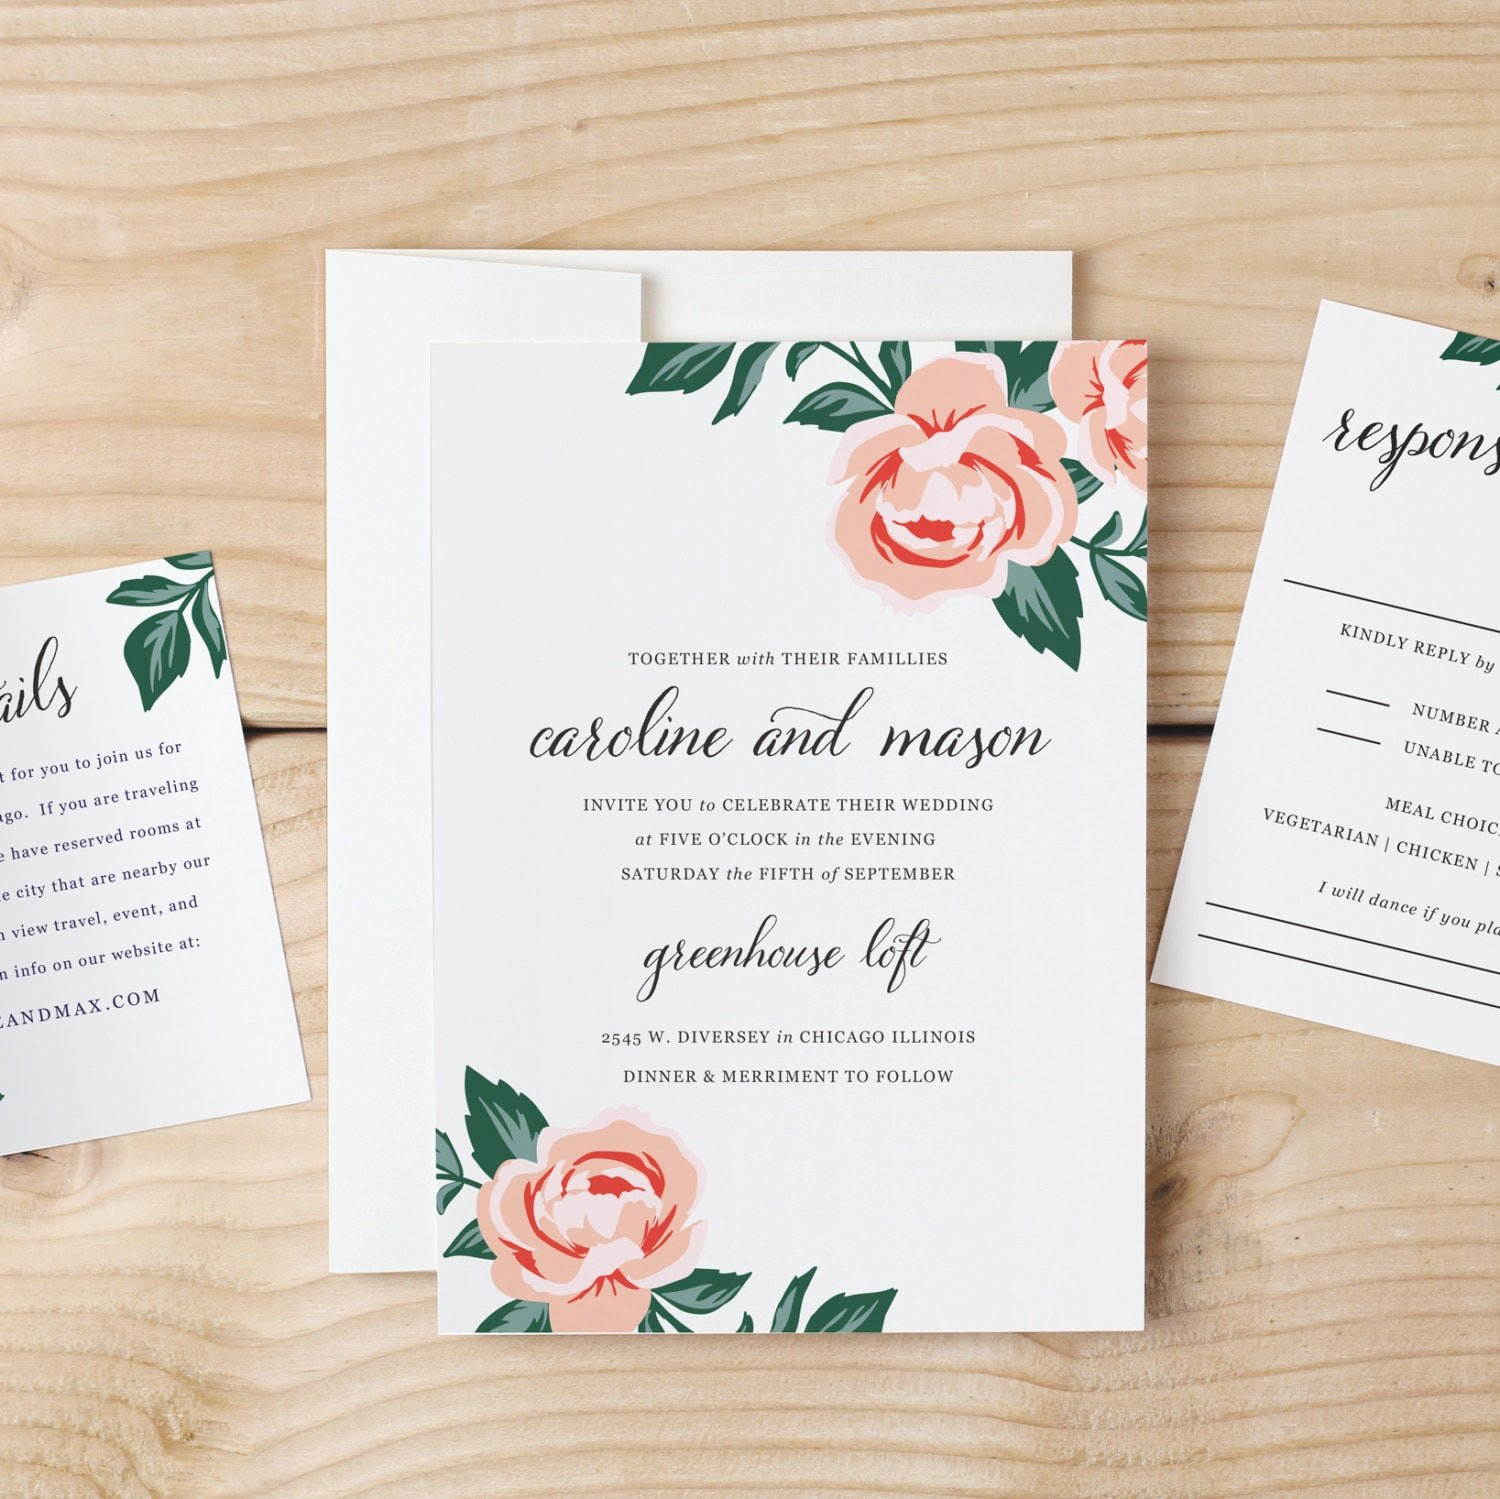 Diy Wedding Invitation Template Free Elegant Diy Wedding Invitation Template Colorful Floral Word or